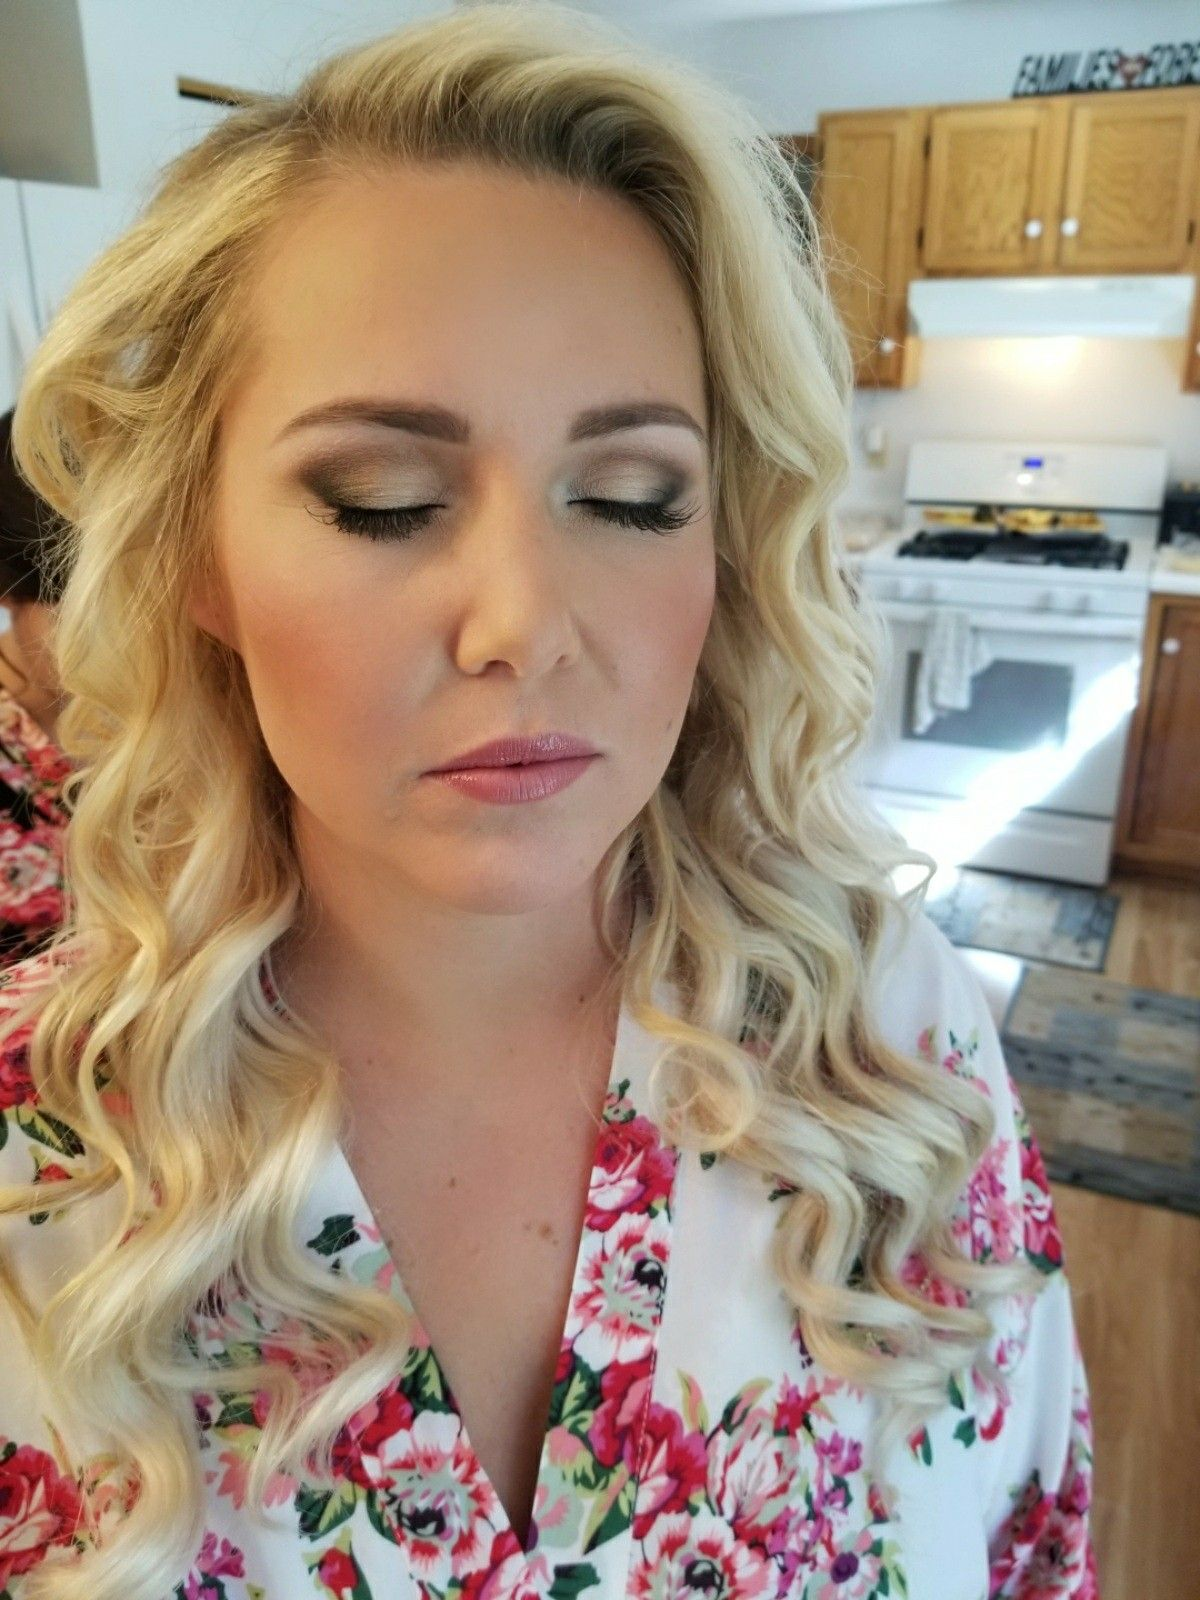 Bridal Makeup with a soft smokey eye. Dinair airbrush